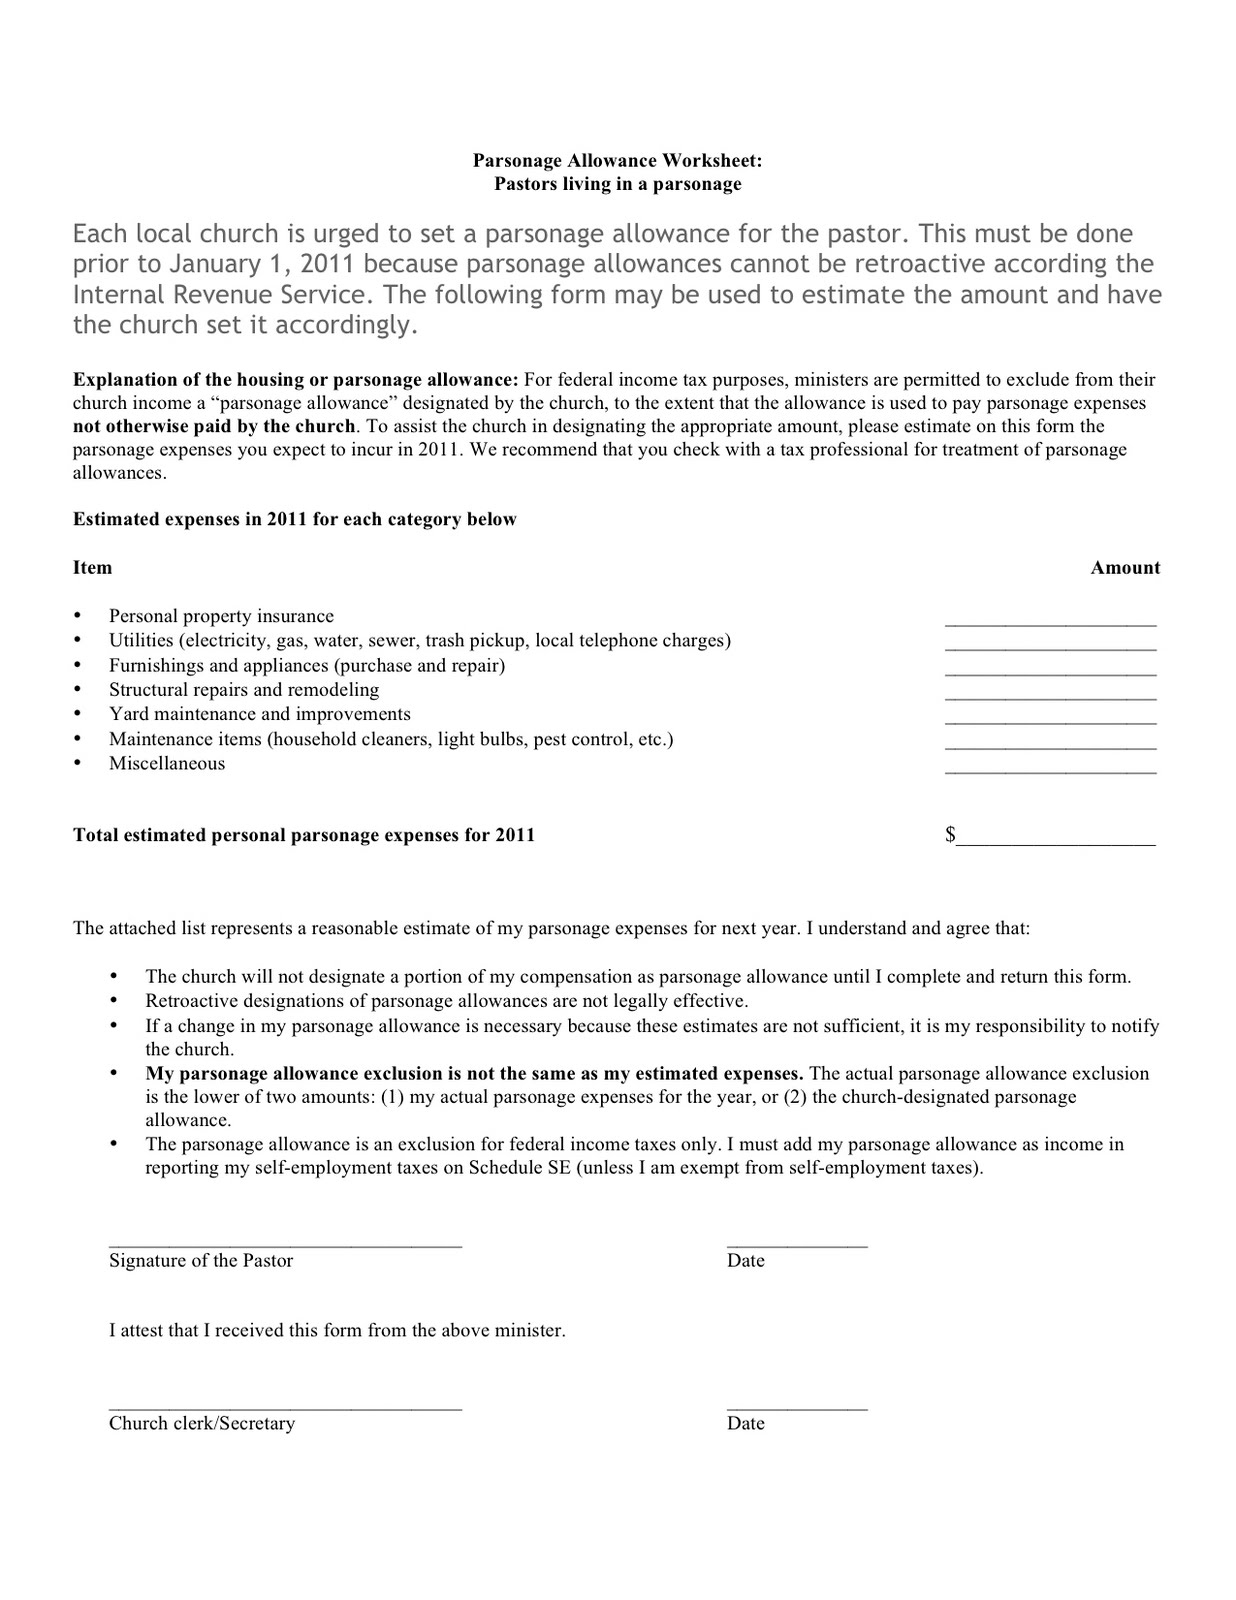 Worksheet Irs Personal Allowance Worksheet Grass Fedjp Worksheet Study Site